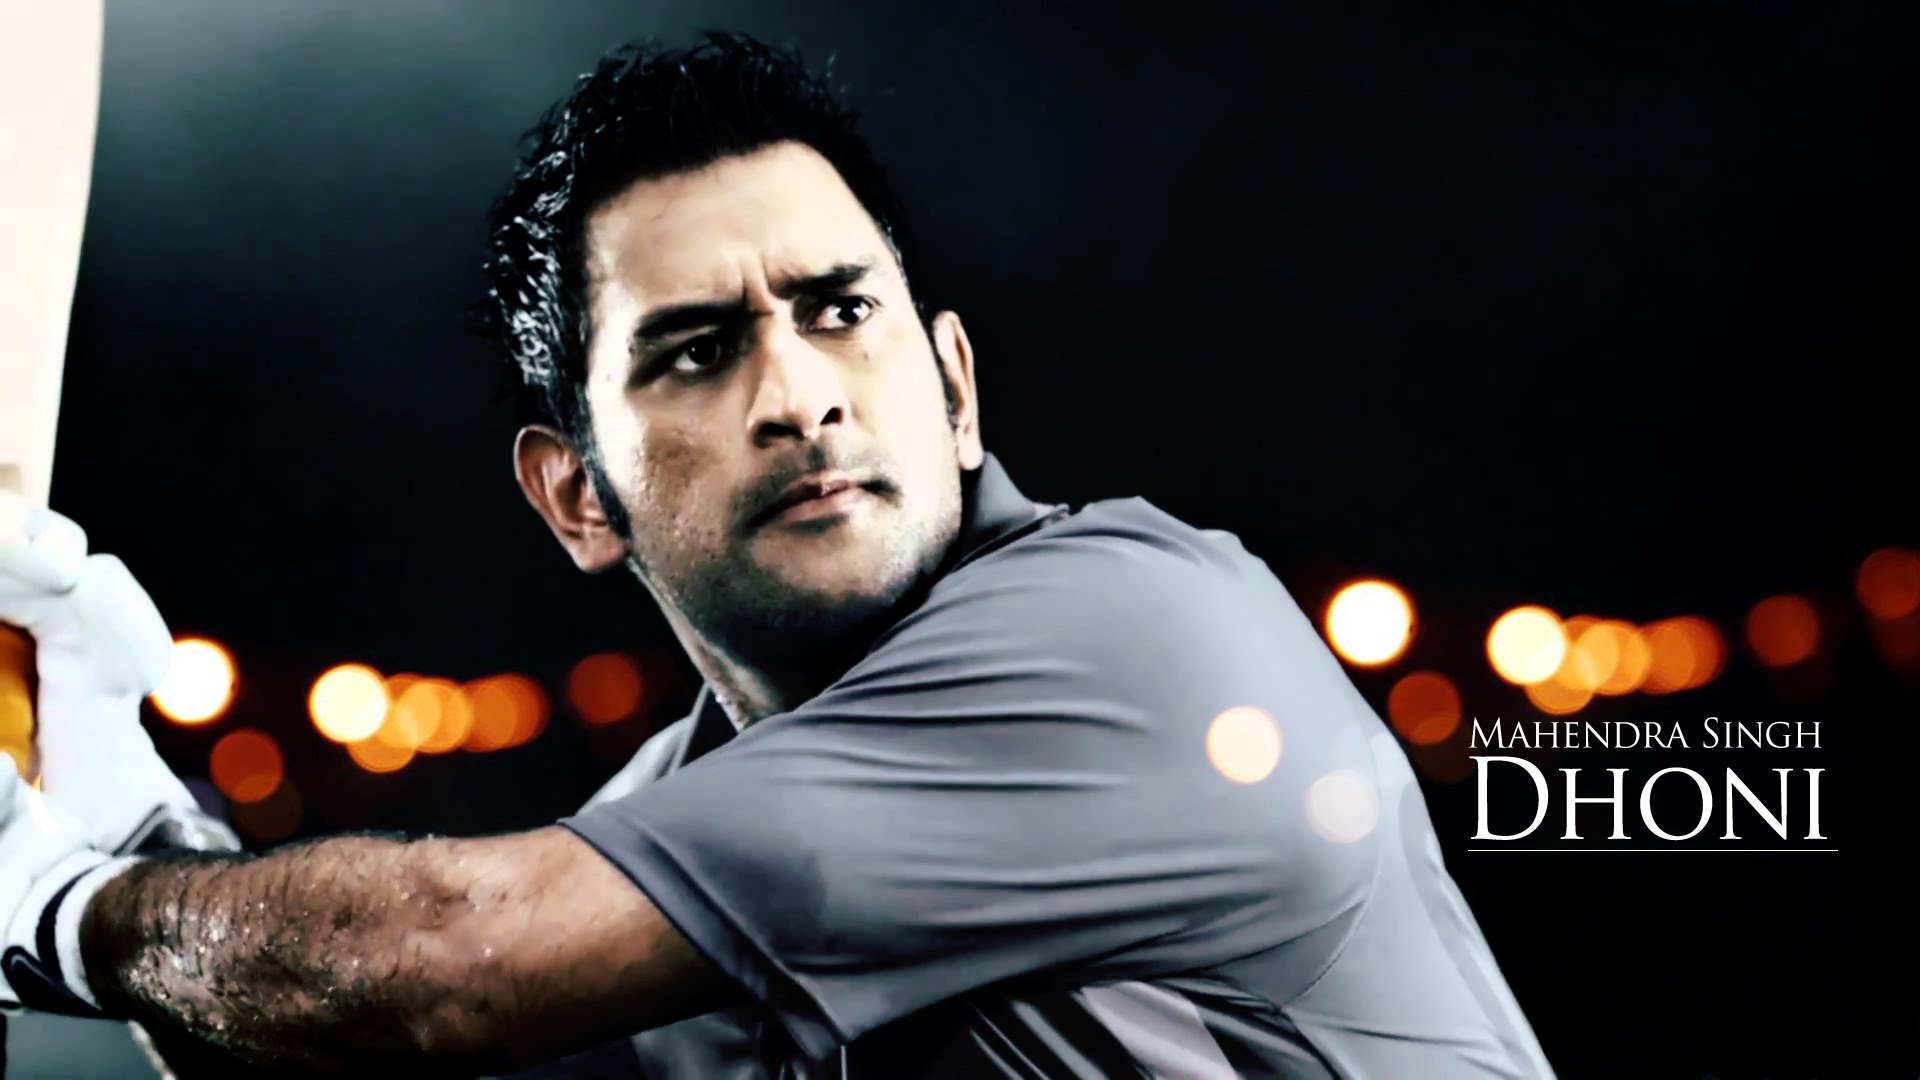 M.S.Dhoni Movie Trailer Watch Here